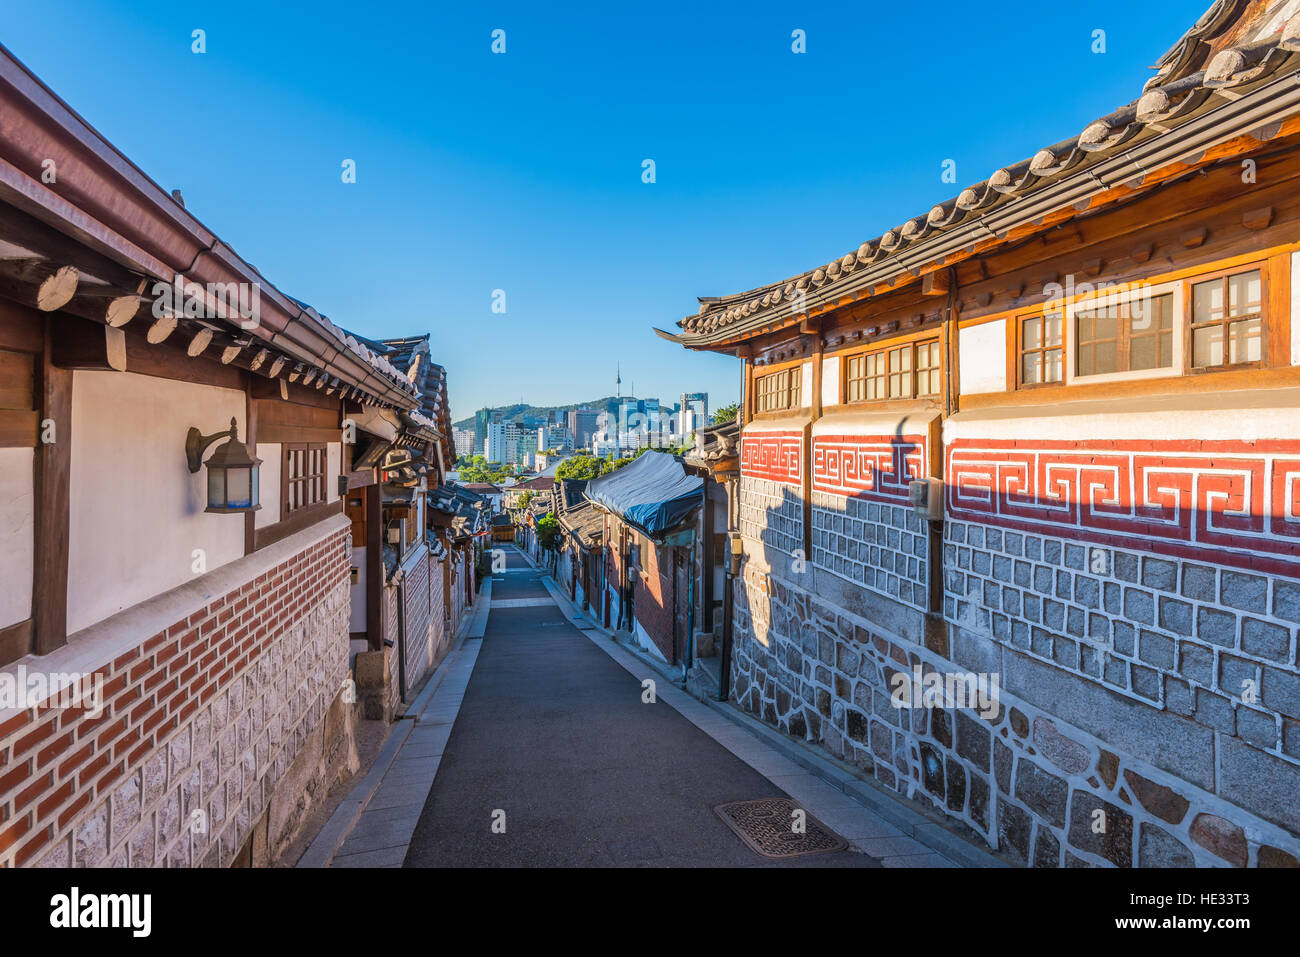 Bukchon Hanok Village in Seoul, South Korea. - Stock Image